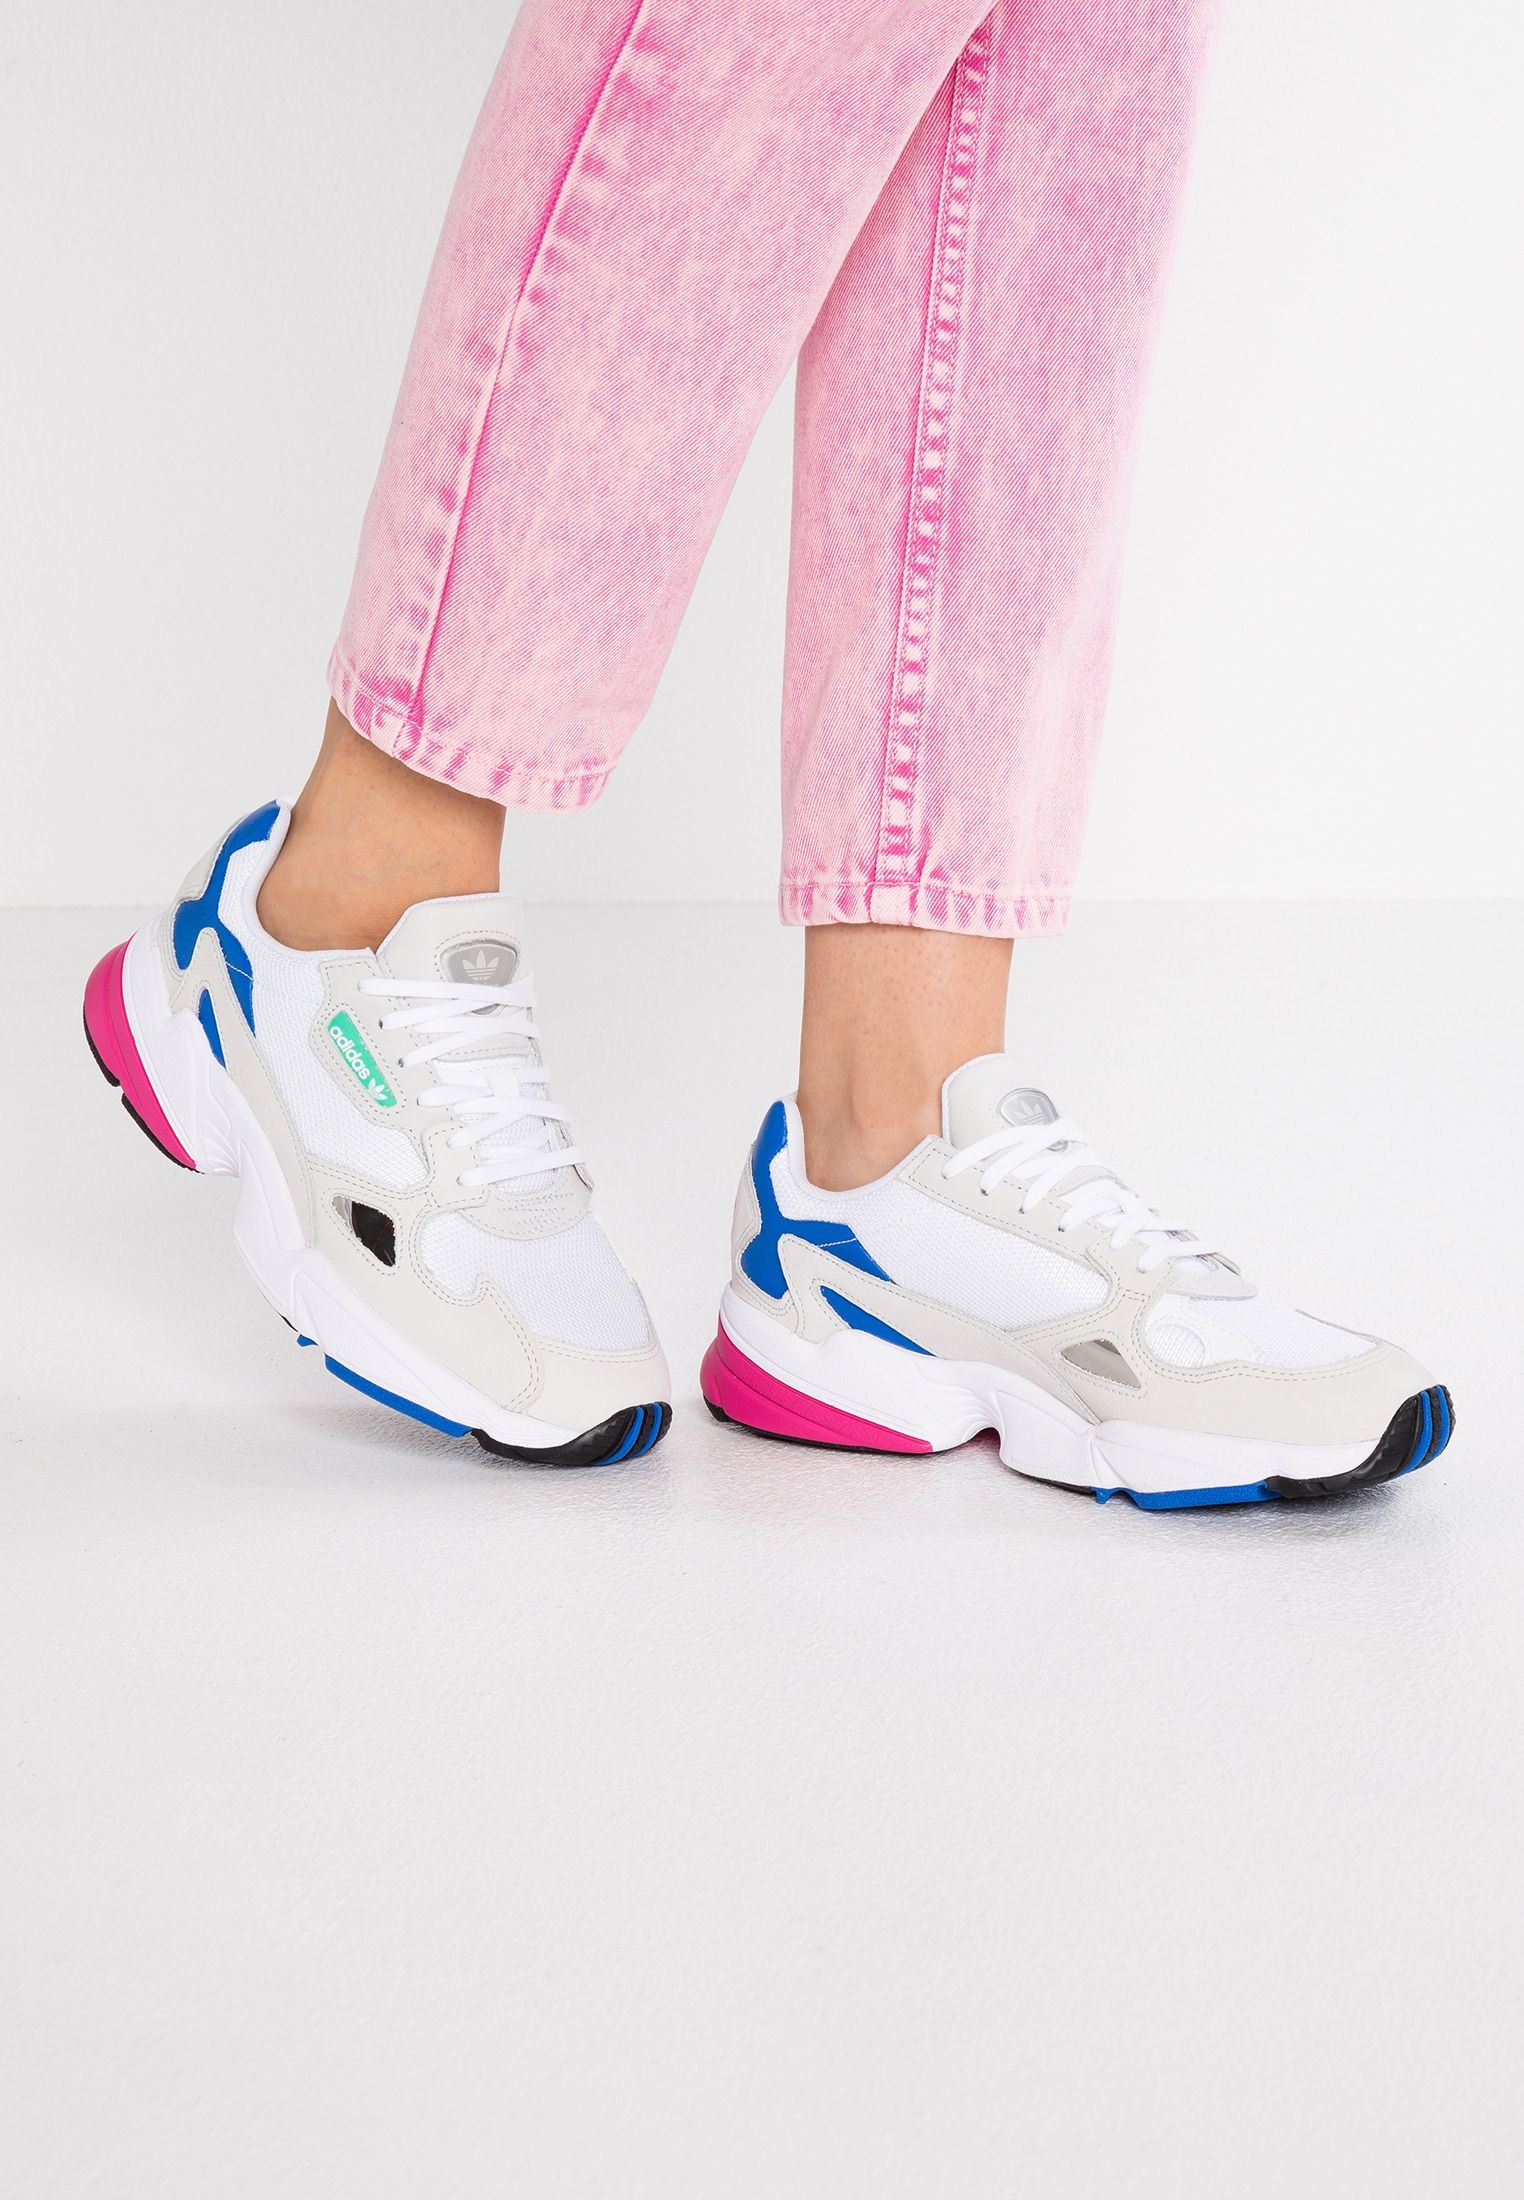 innovative design 75d1b 1f4bb adidas Originals FALCON -36 23 - 100€